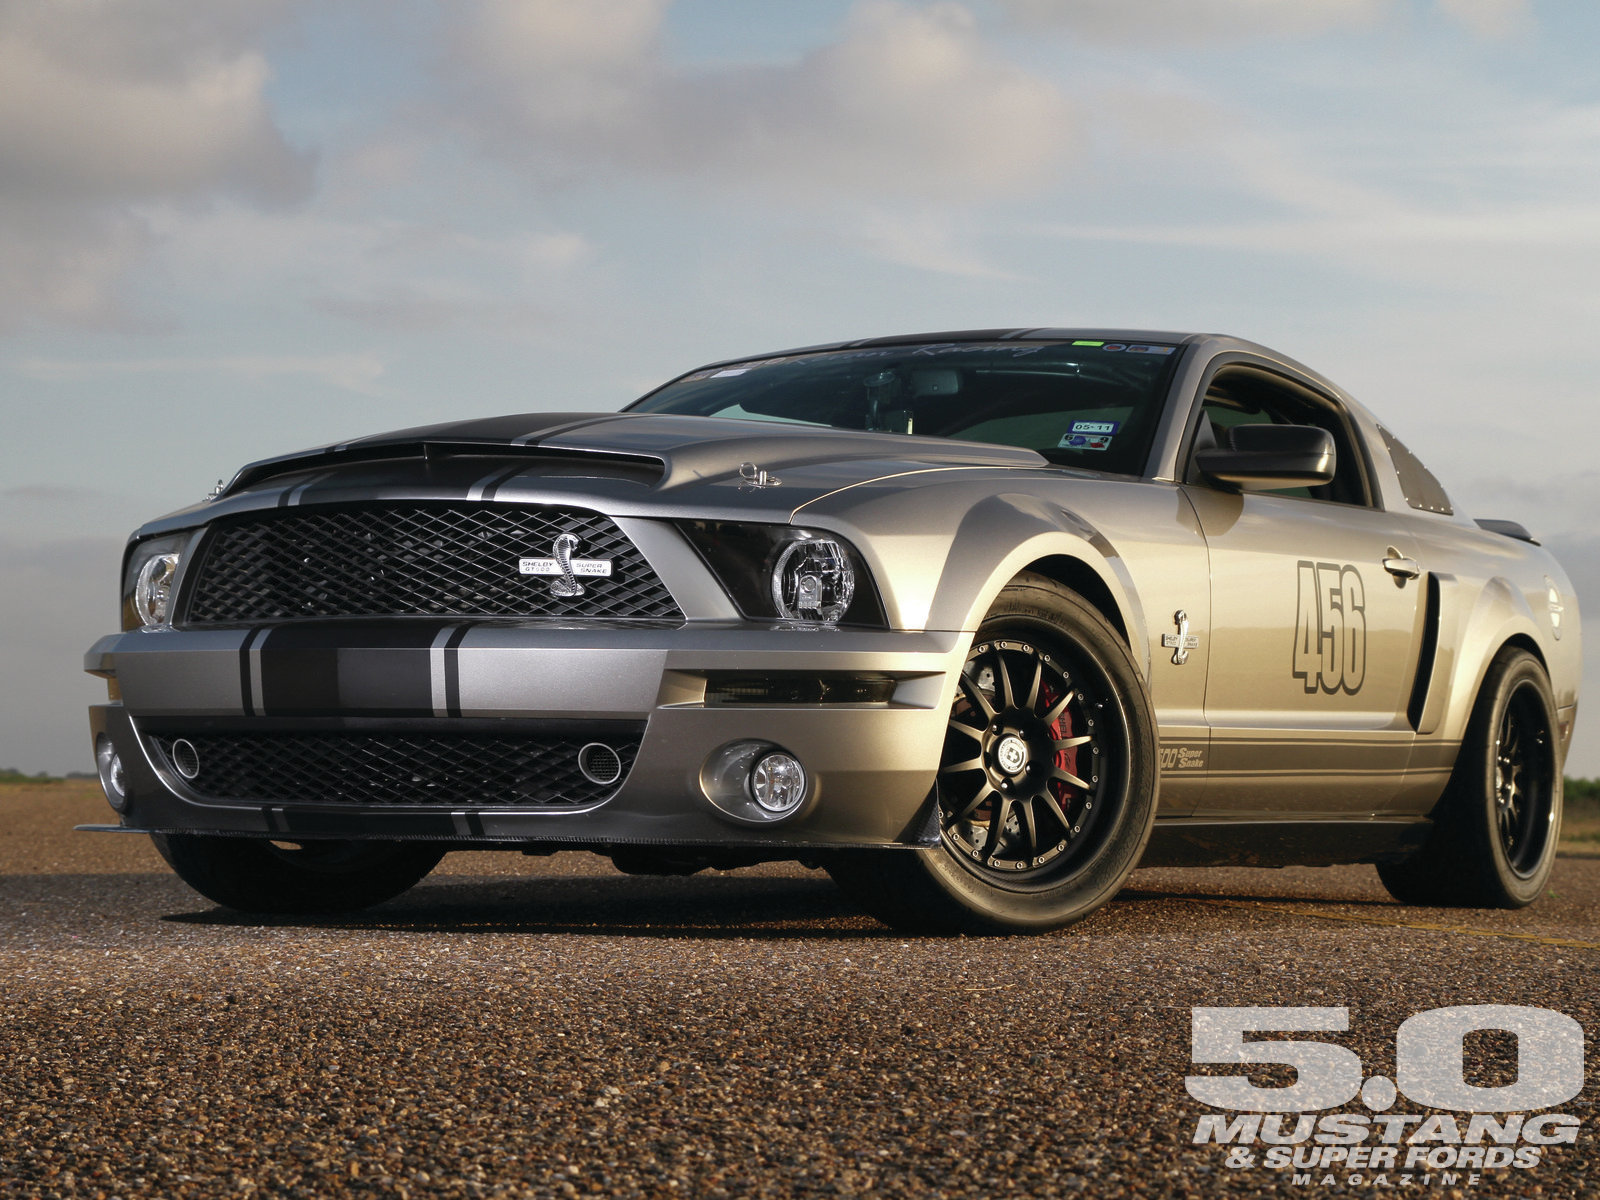 2008 Ford Shelby Gt500 #3